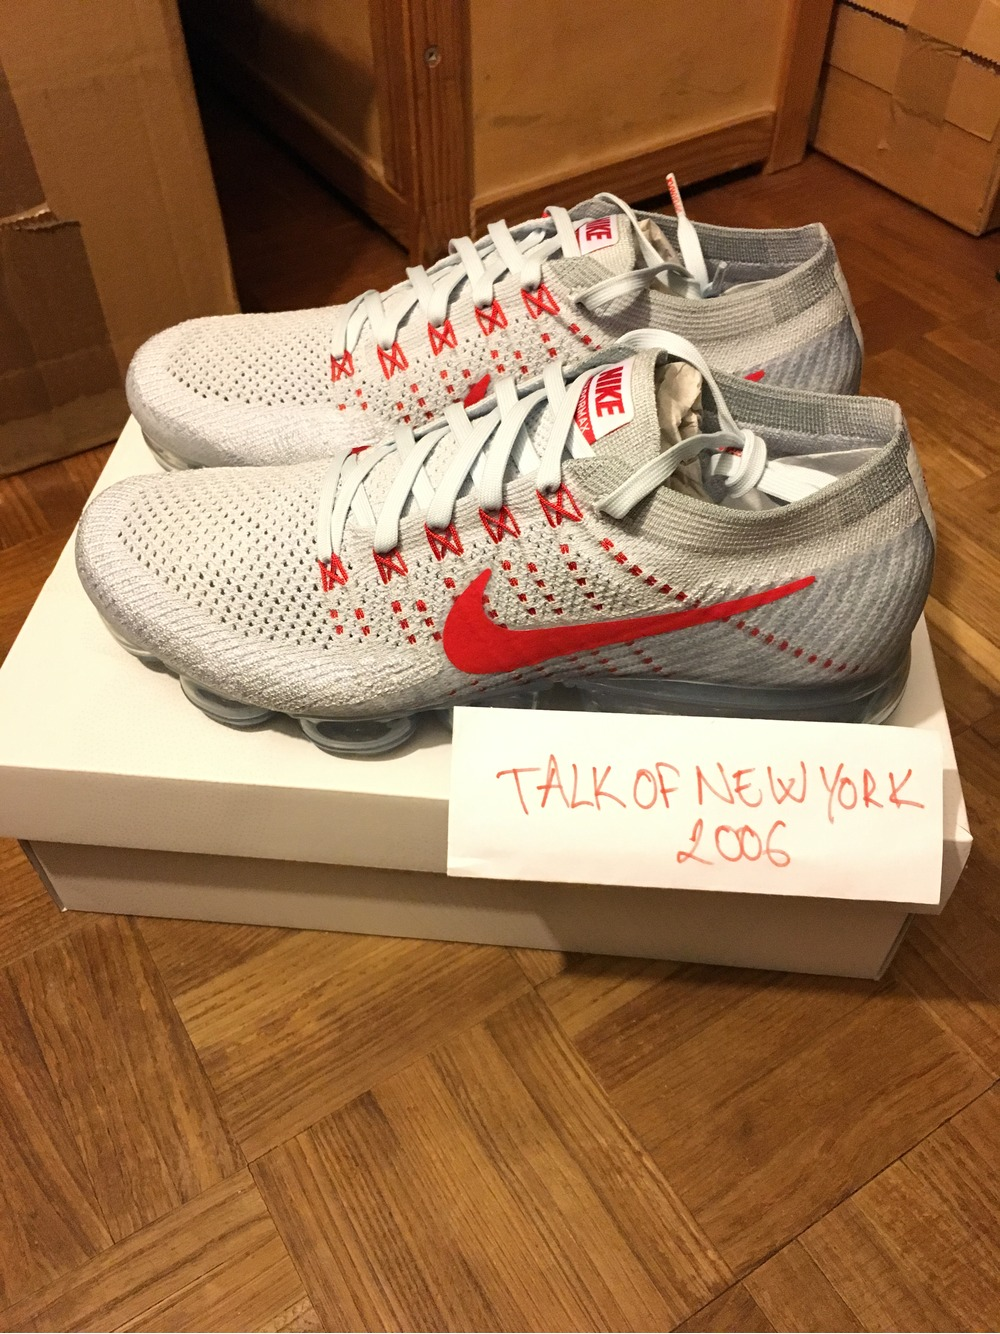 Cheap Nike VaporMax OG Uk 9 university red platinum cdg Air Max